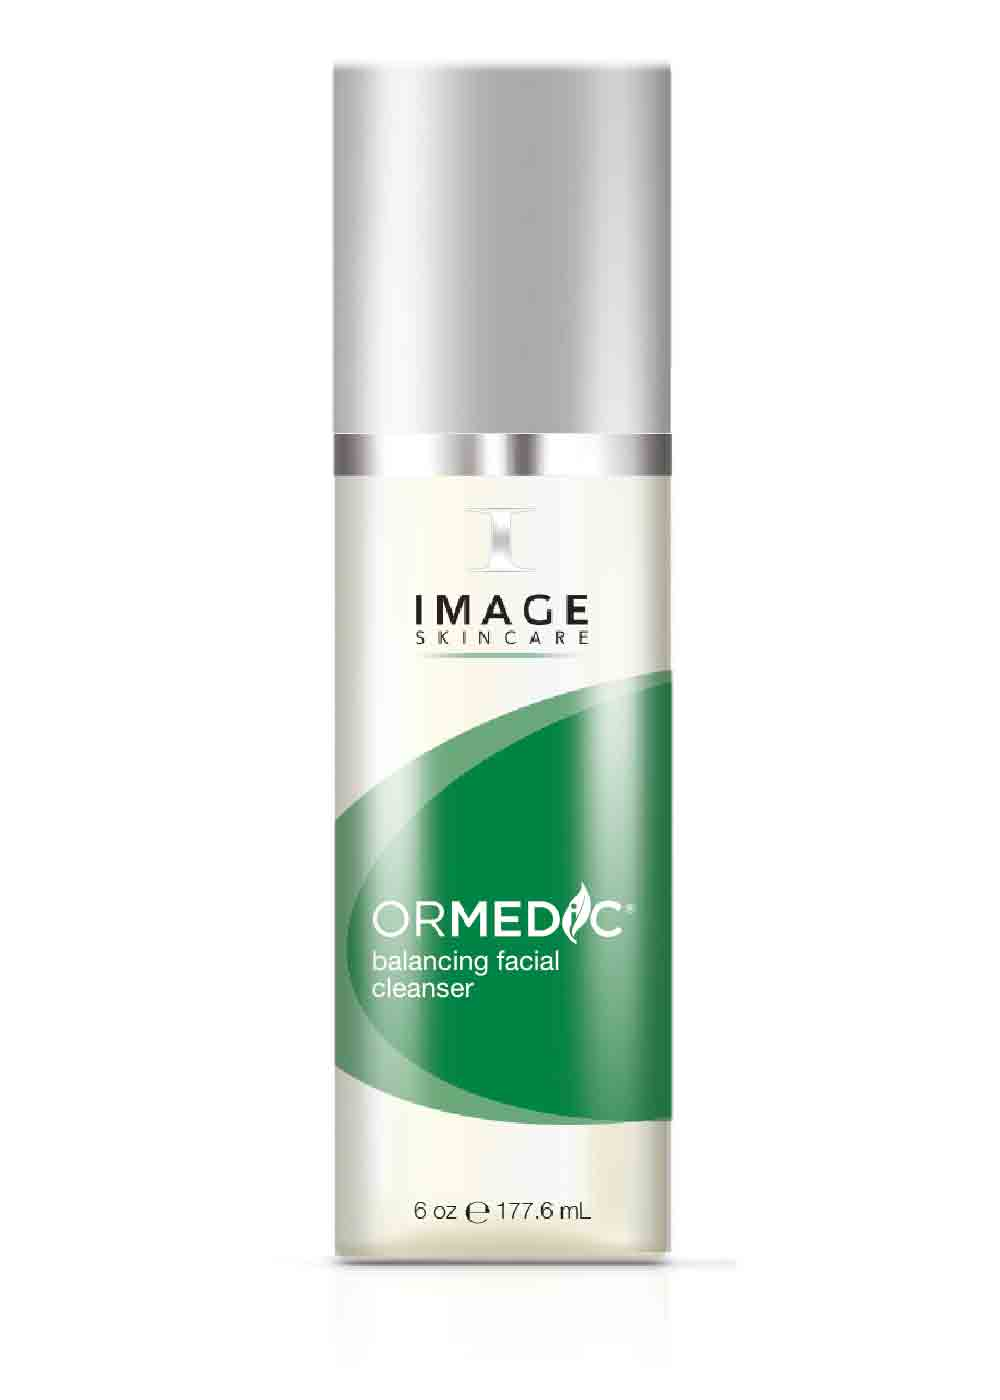 ORMEDIC    balancing facial cleanser nettoyant facial équilibrant